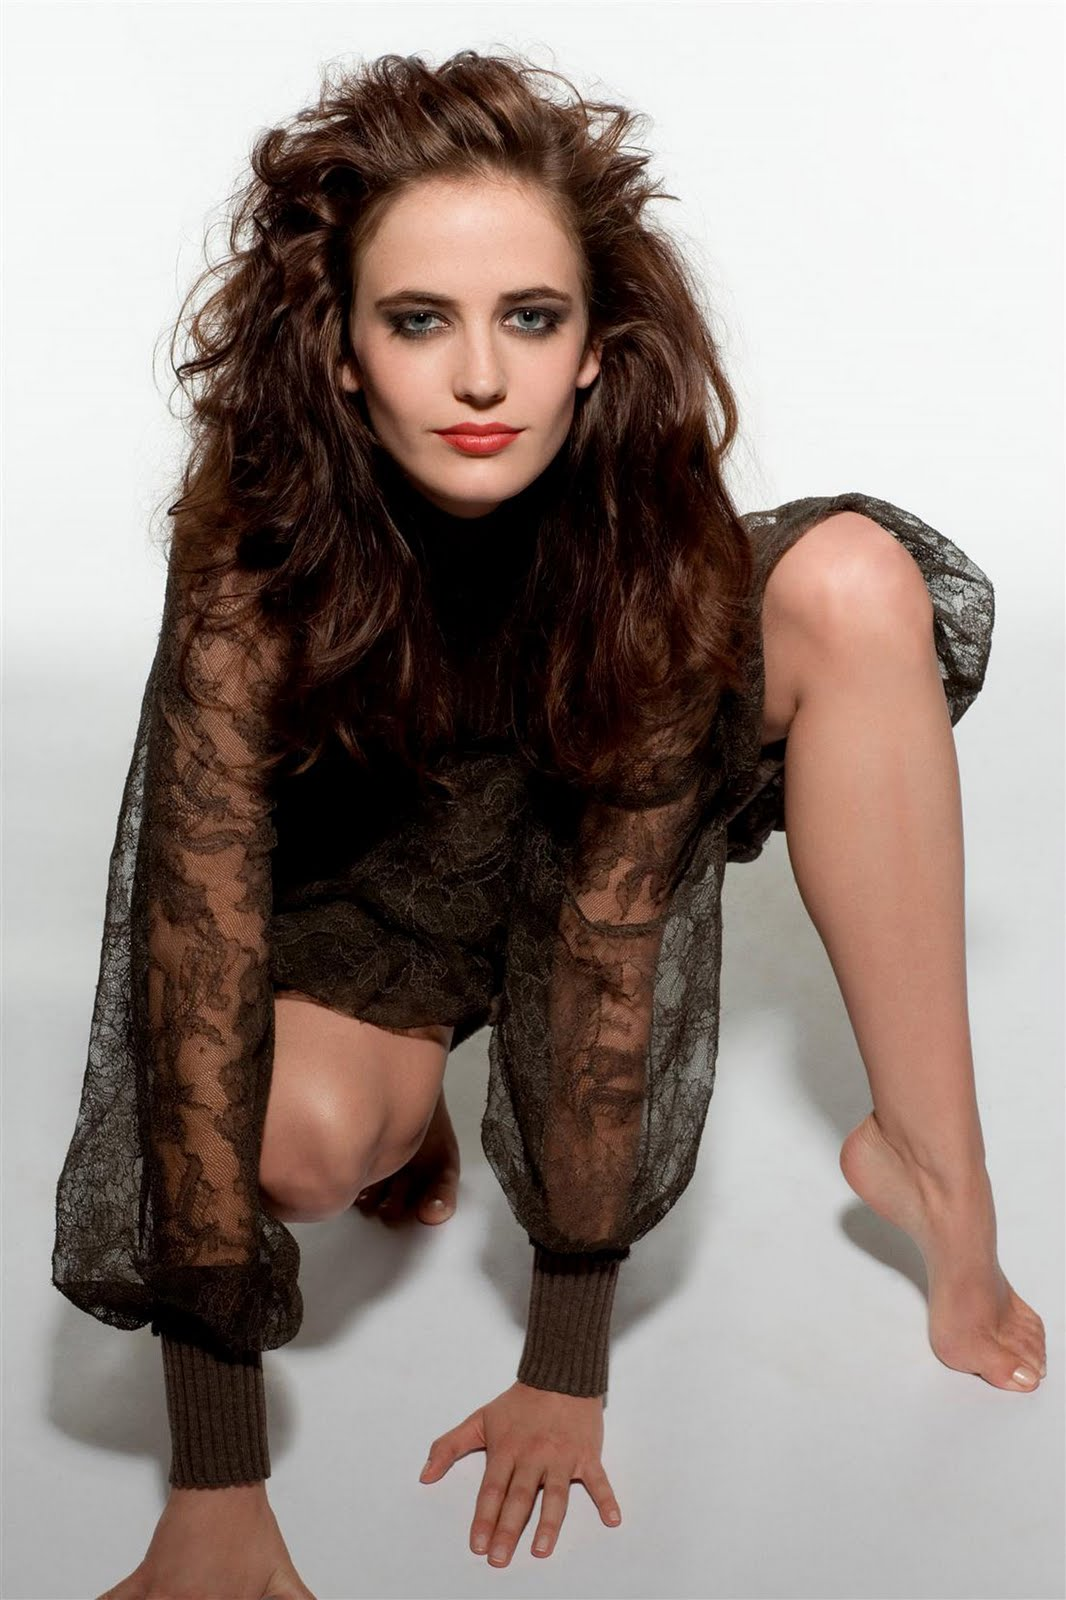 Eva green as bond girl